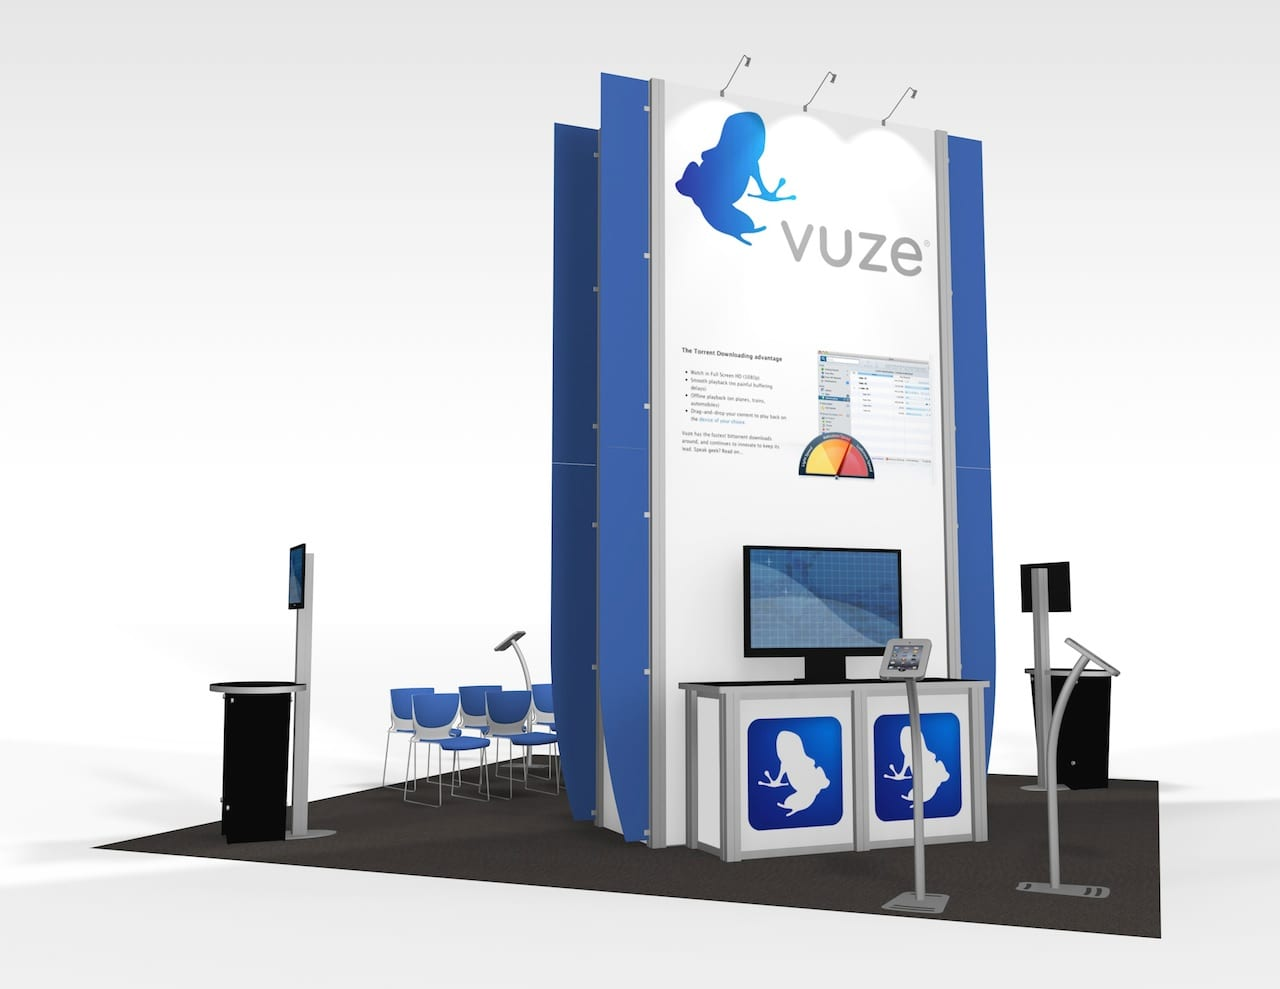 20x20 booth